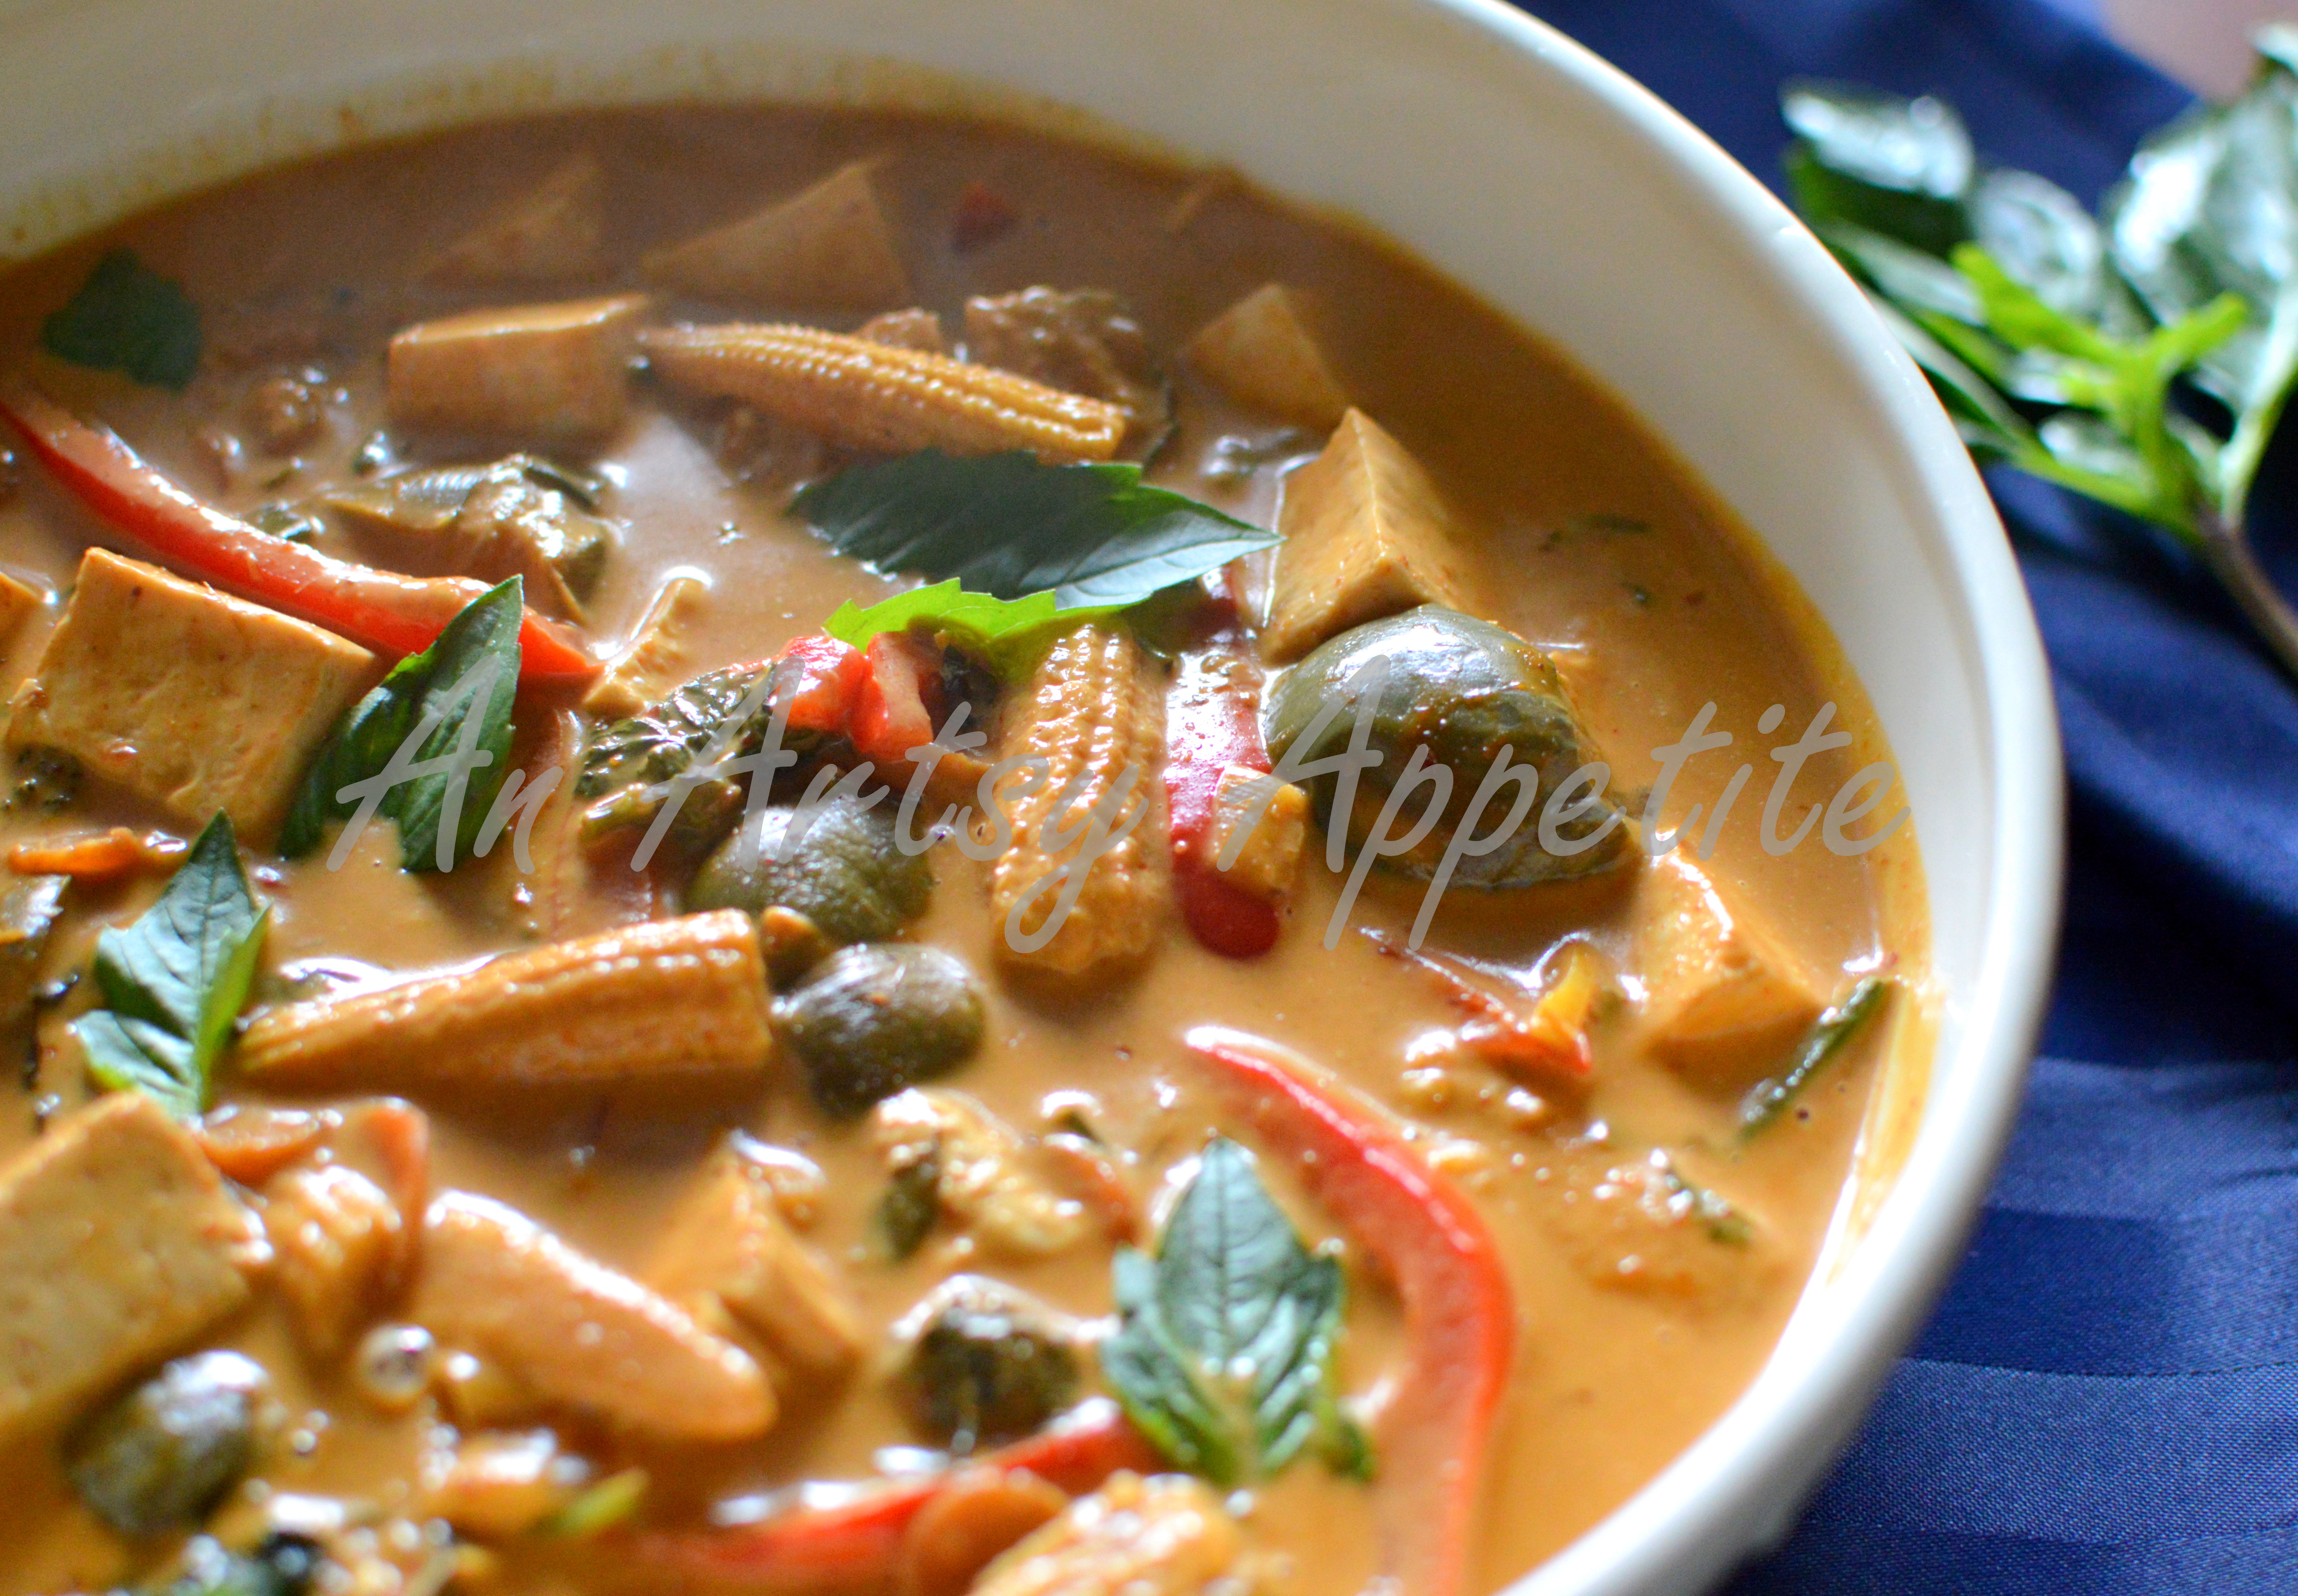 Thai red curry recipe vegetarian an artsy appetite for Best thai red curry